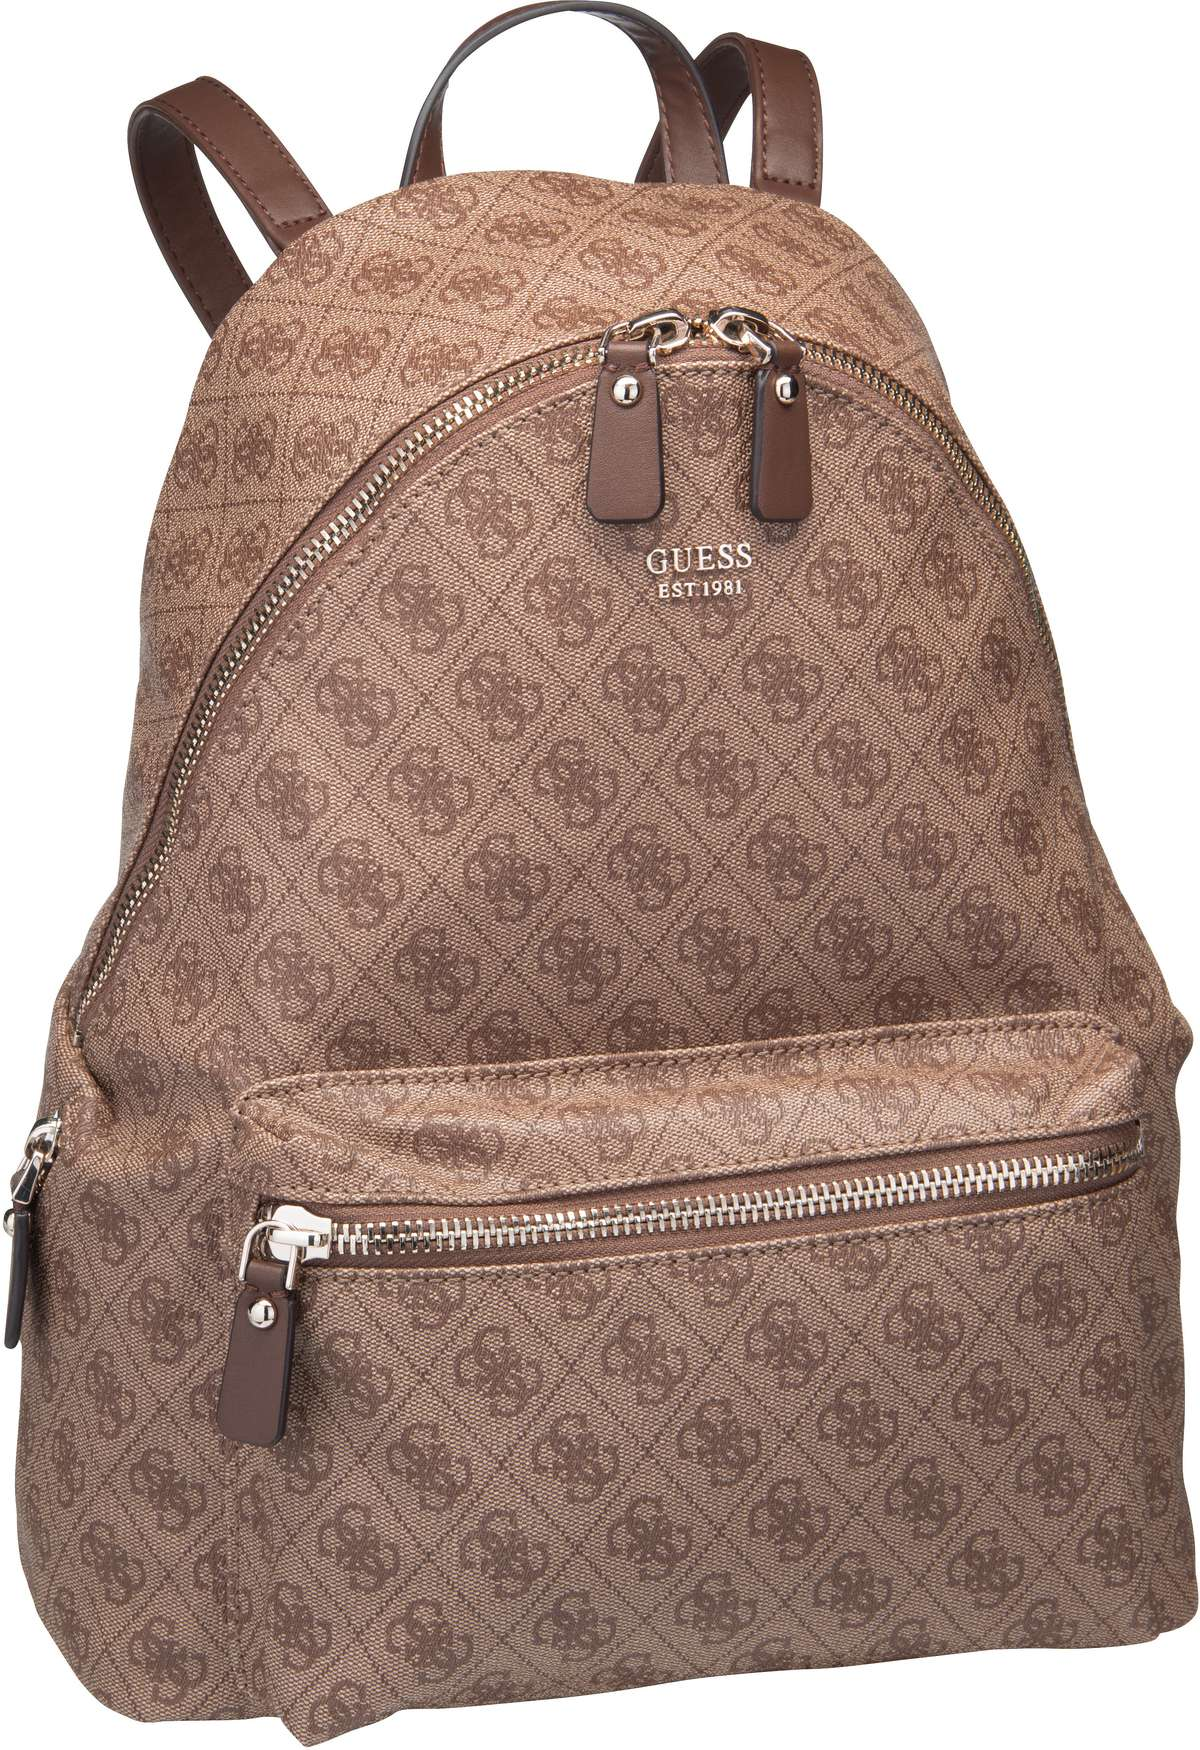 Rucksack / Daypack Leeza Backpack Light Brown